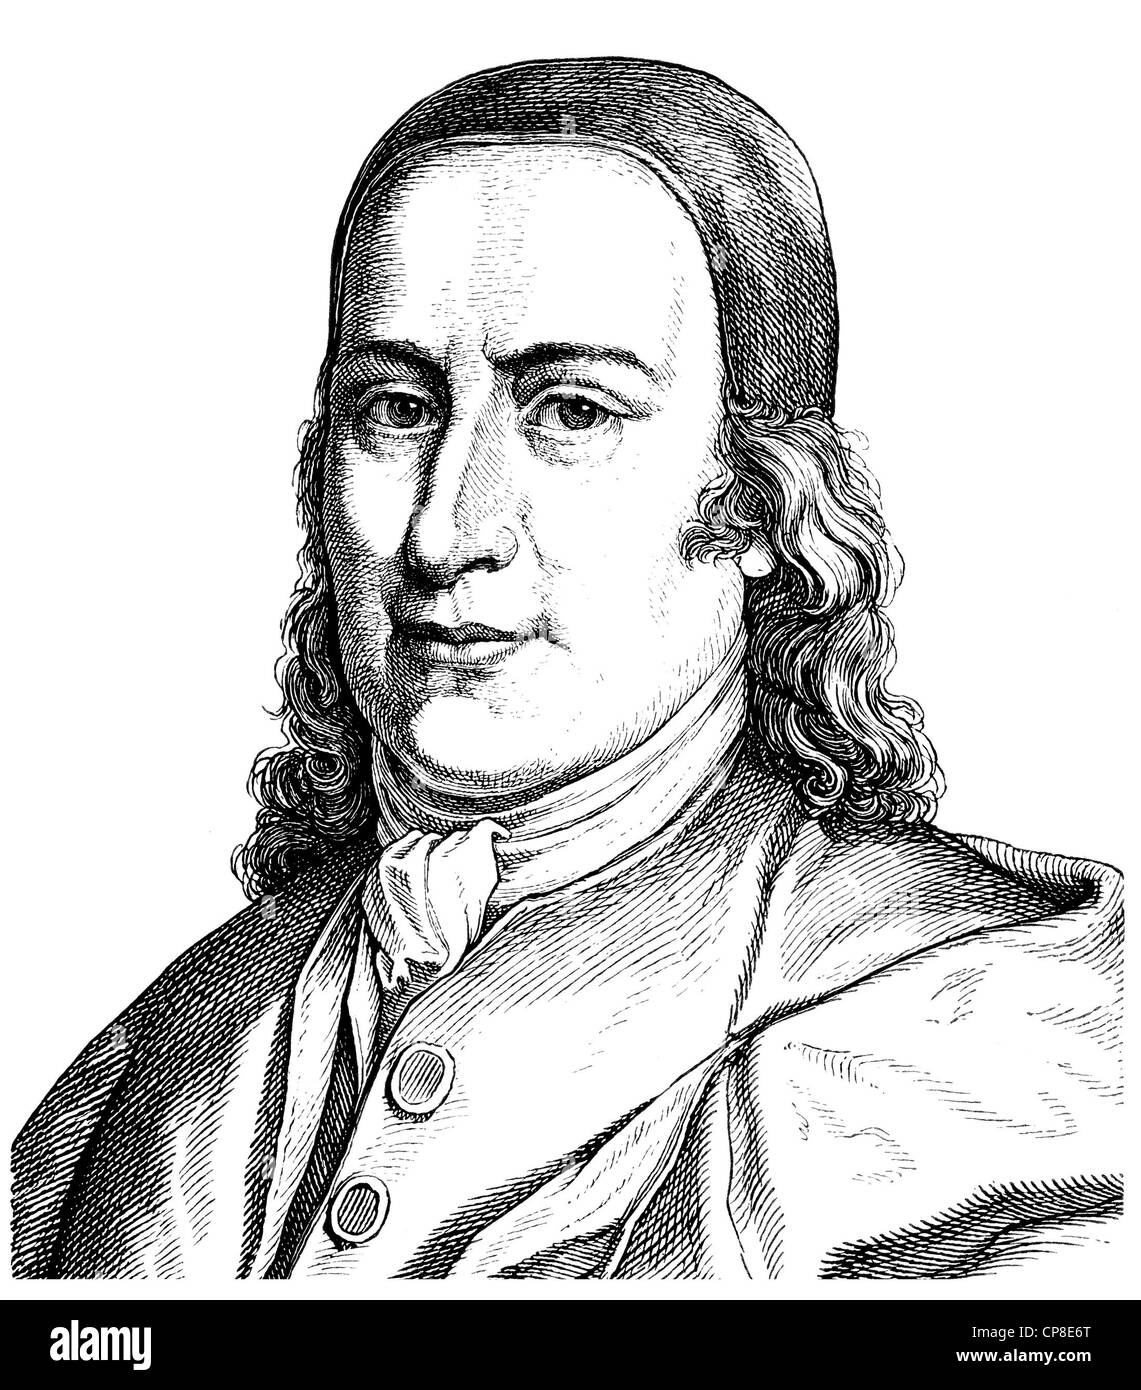 Count Nikolaus Ludwig von Zinzendorf and Pottendorf, 1700 - 1760, a Lutheran Pietist theologian, founder and bishop - Stock Image